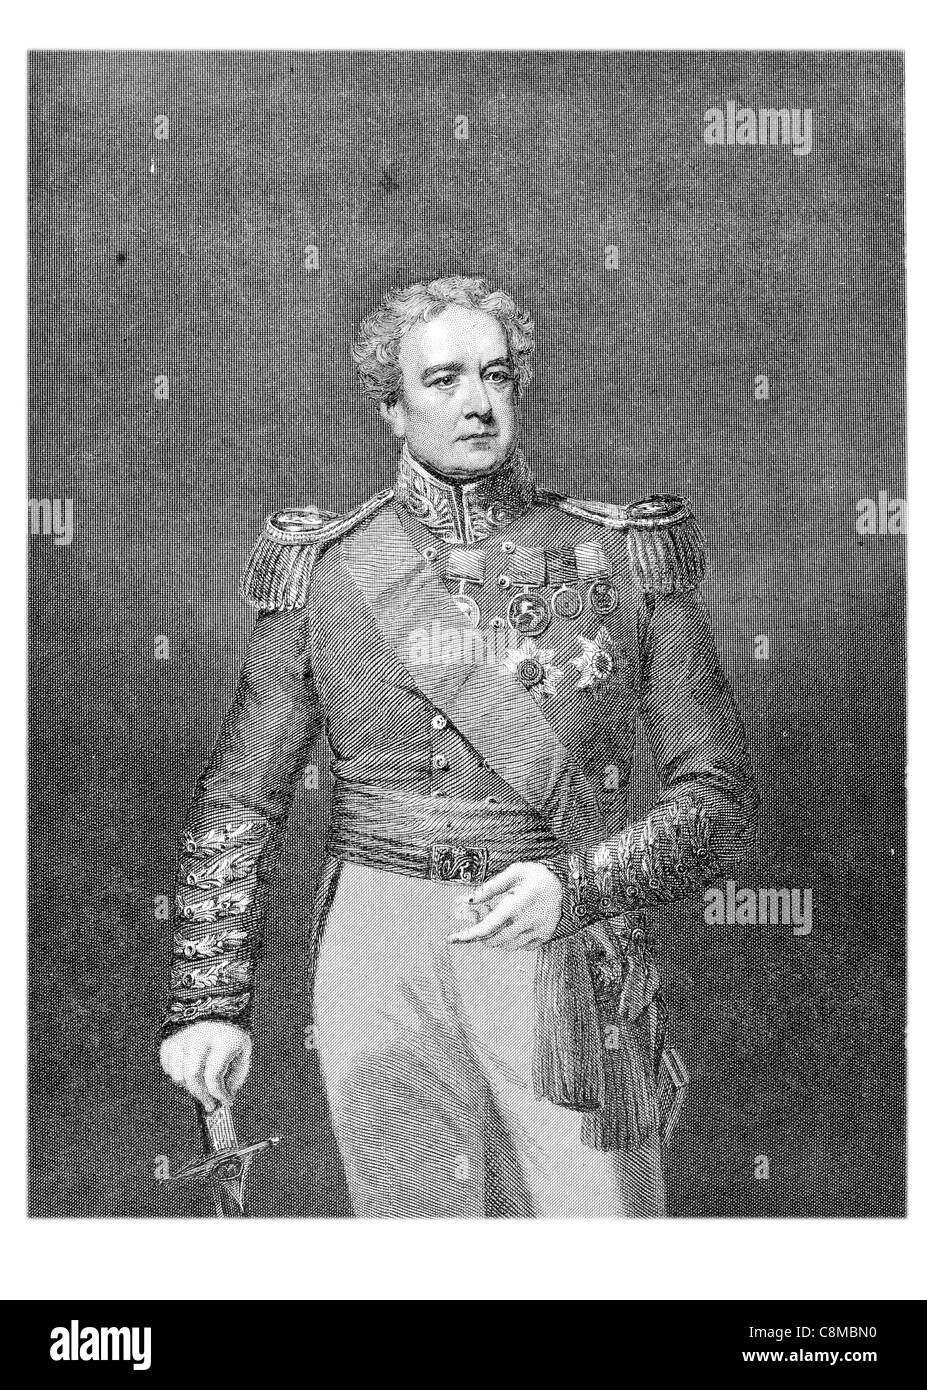 Major General Sir Robert Henry Sale 1782 1845 British Army officer commanded garrison f Jalalabad First Afghan War - Stock Image